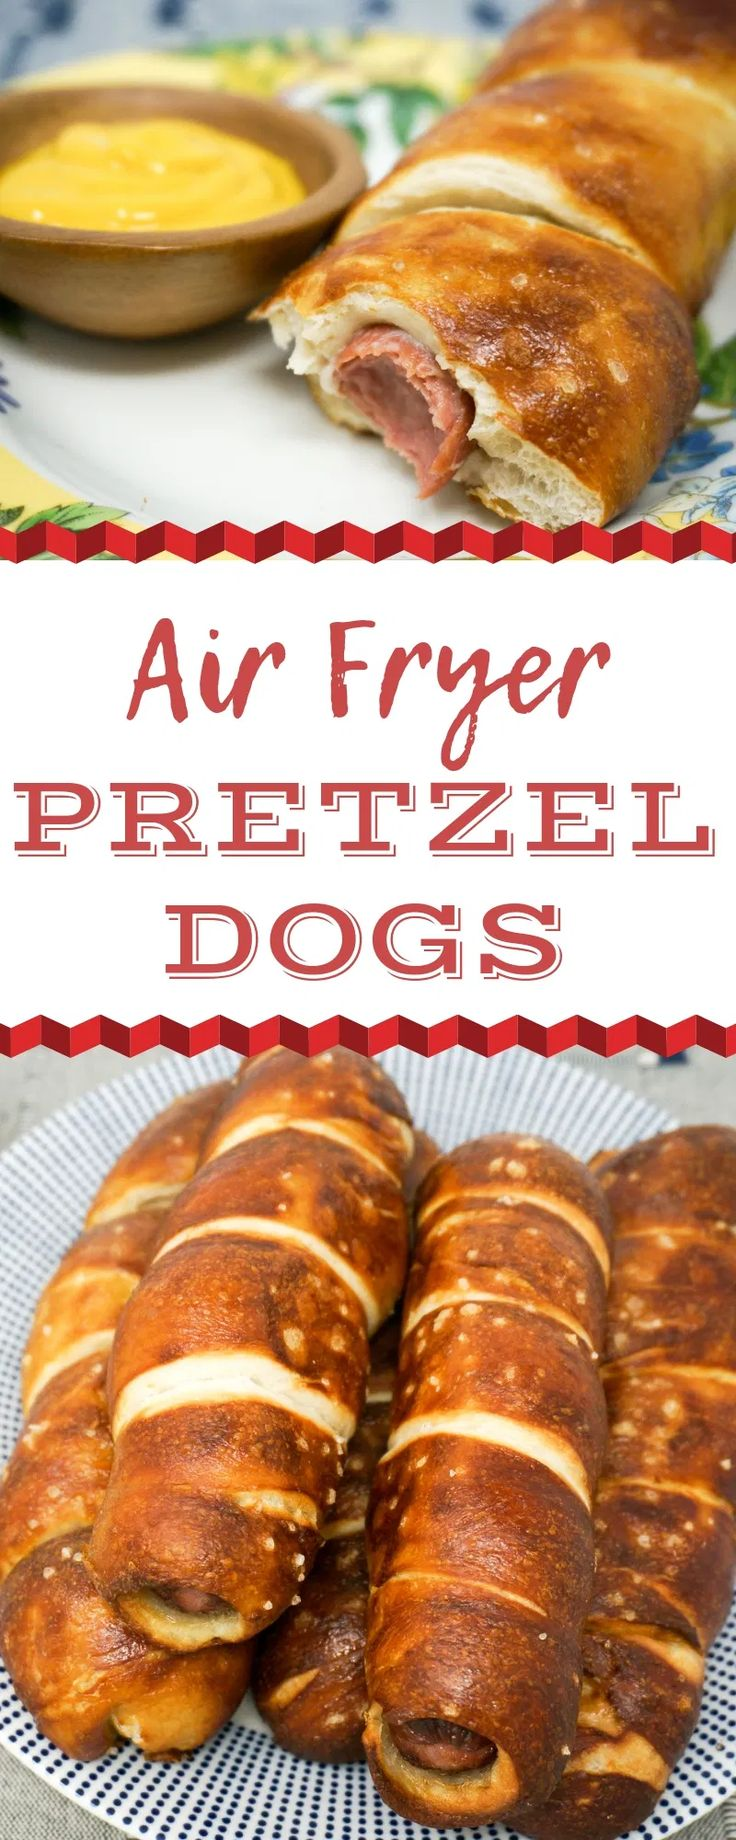 Air Fryer Pretzel Dogs Recipe Air fryer recipes